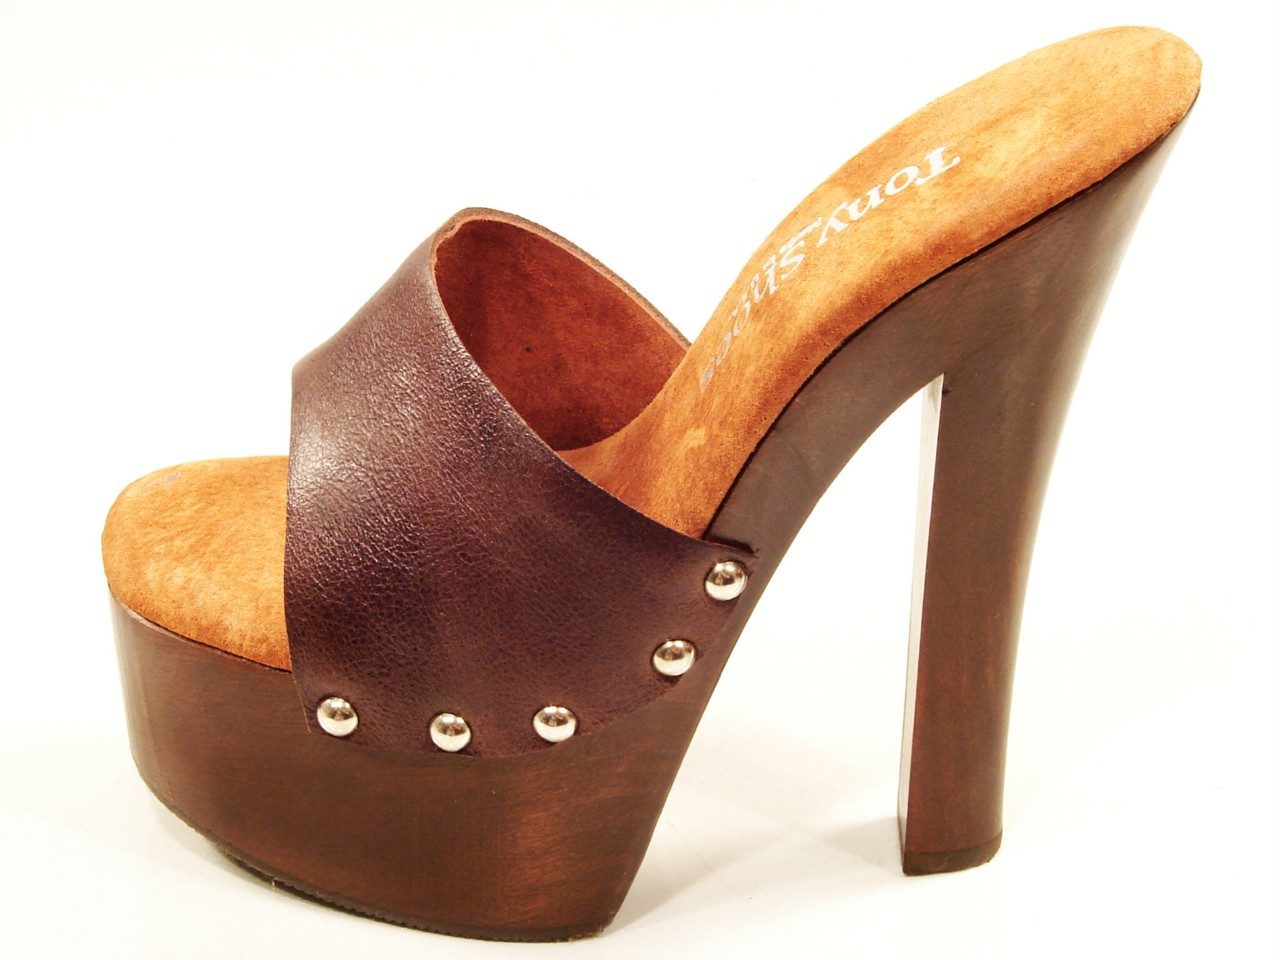 Tony Shoes Candy Brown High Heel Wood Platform Slip On Mules Sandals